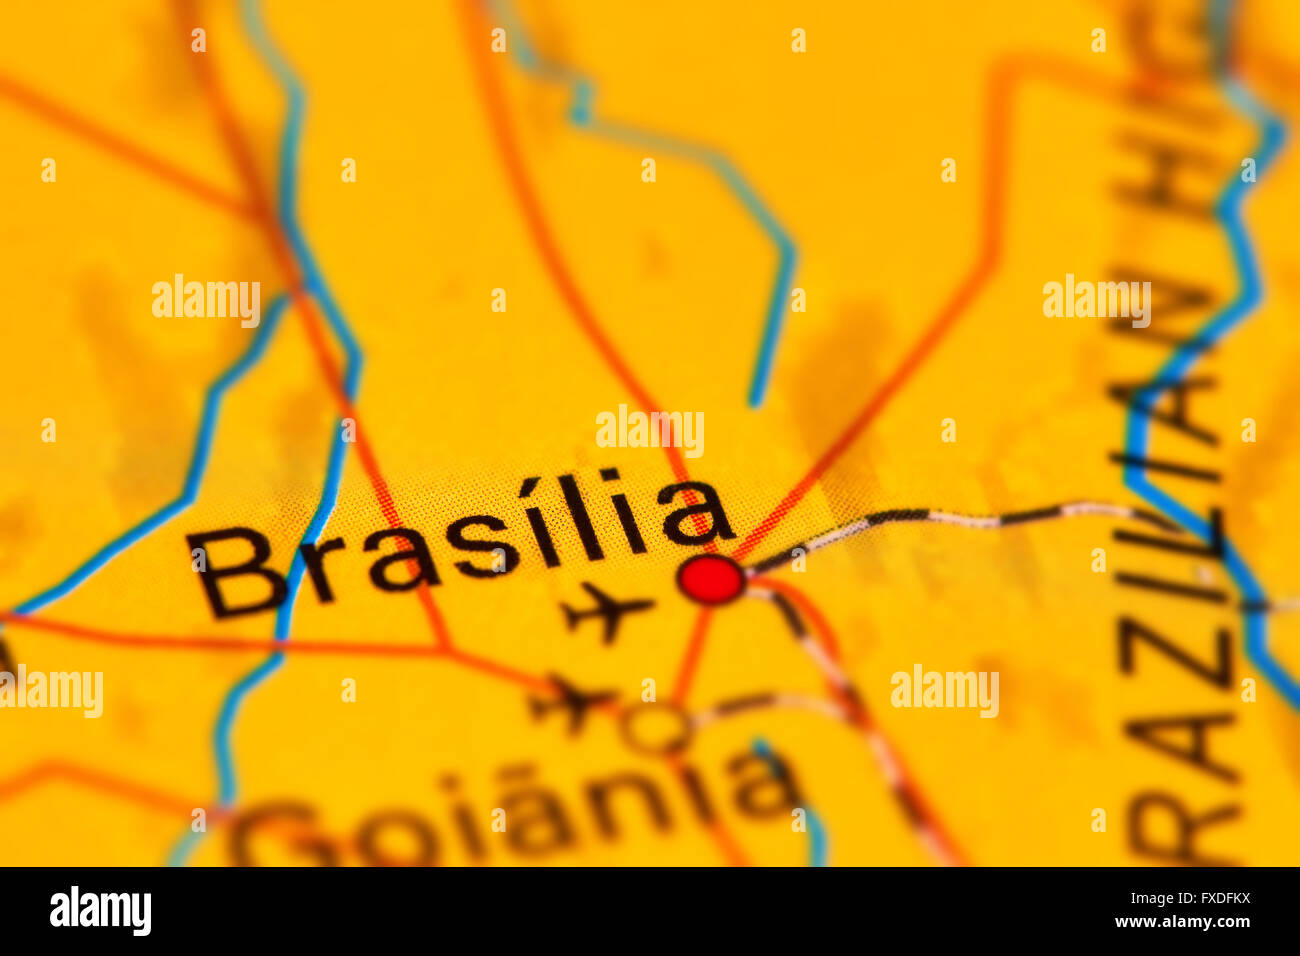 Brasilia capital city of brazil on the world map stock photo brasilia capital city of brazil on the world map gumiabroncs Image collections